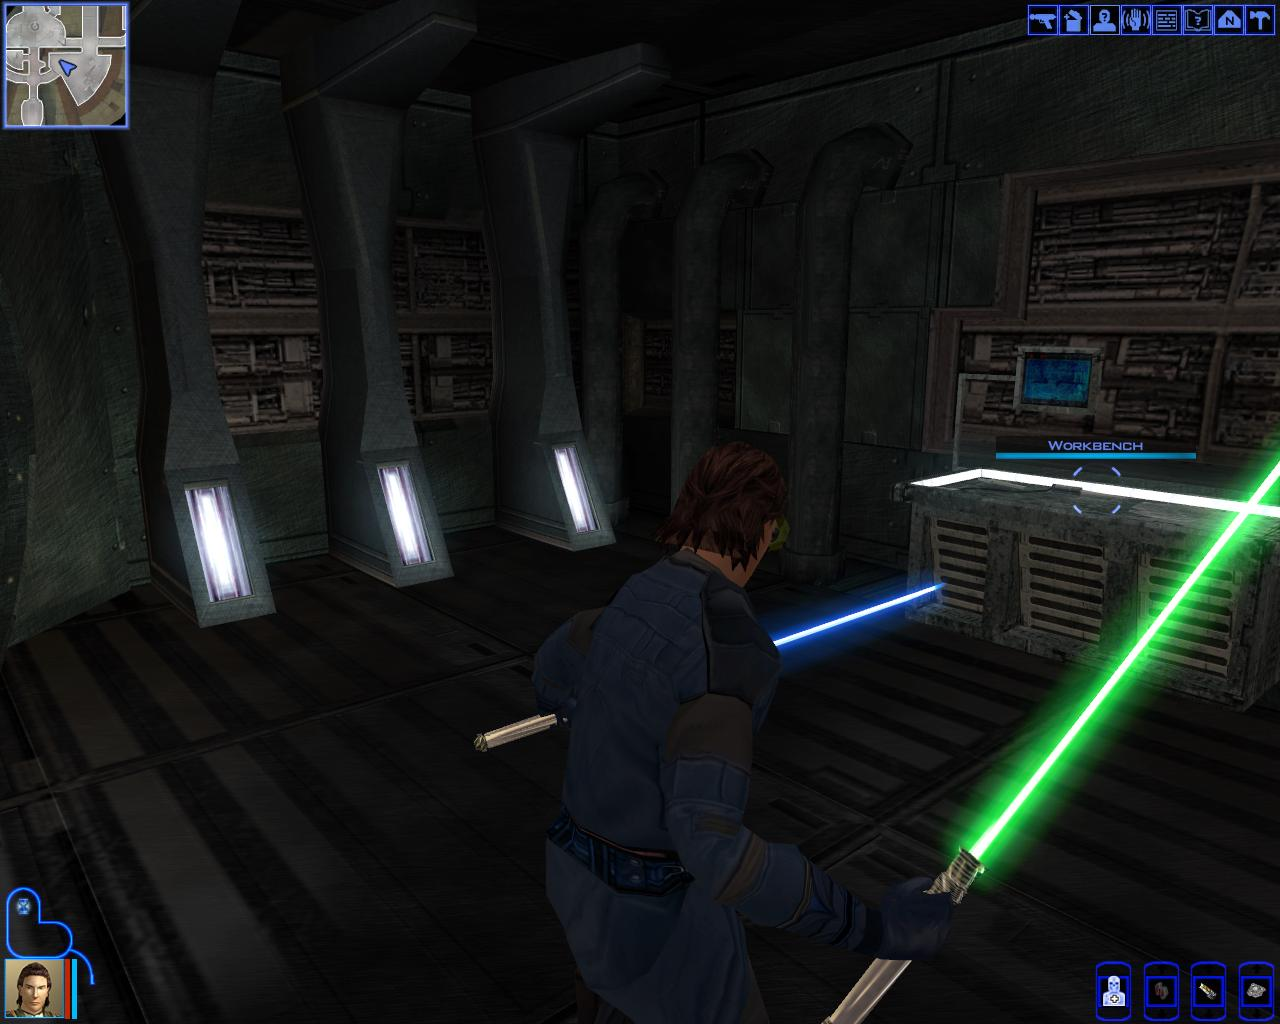 Star wars kotor nude mods pornos picture